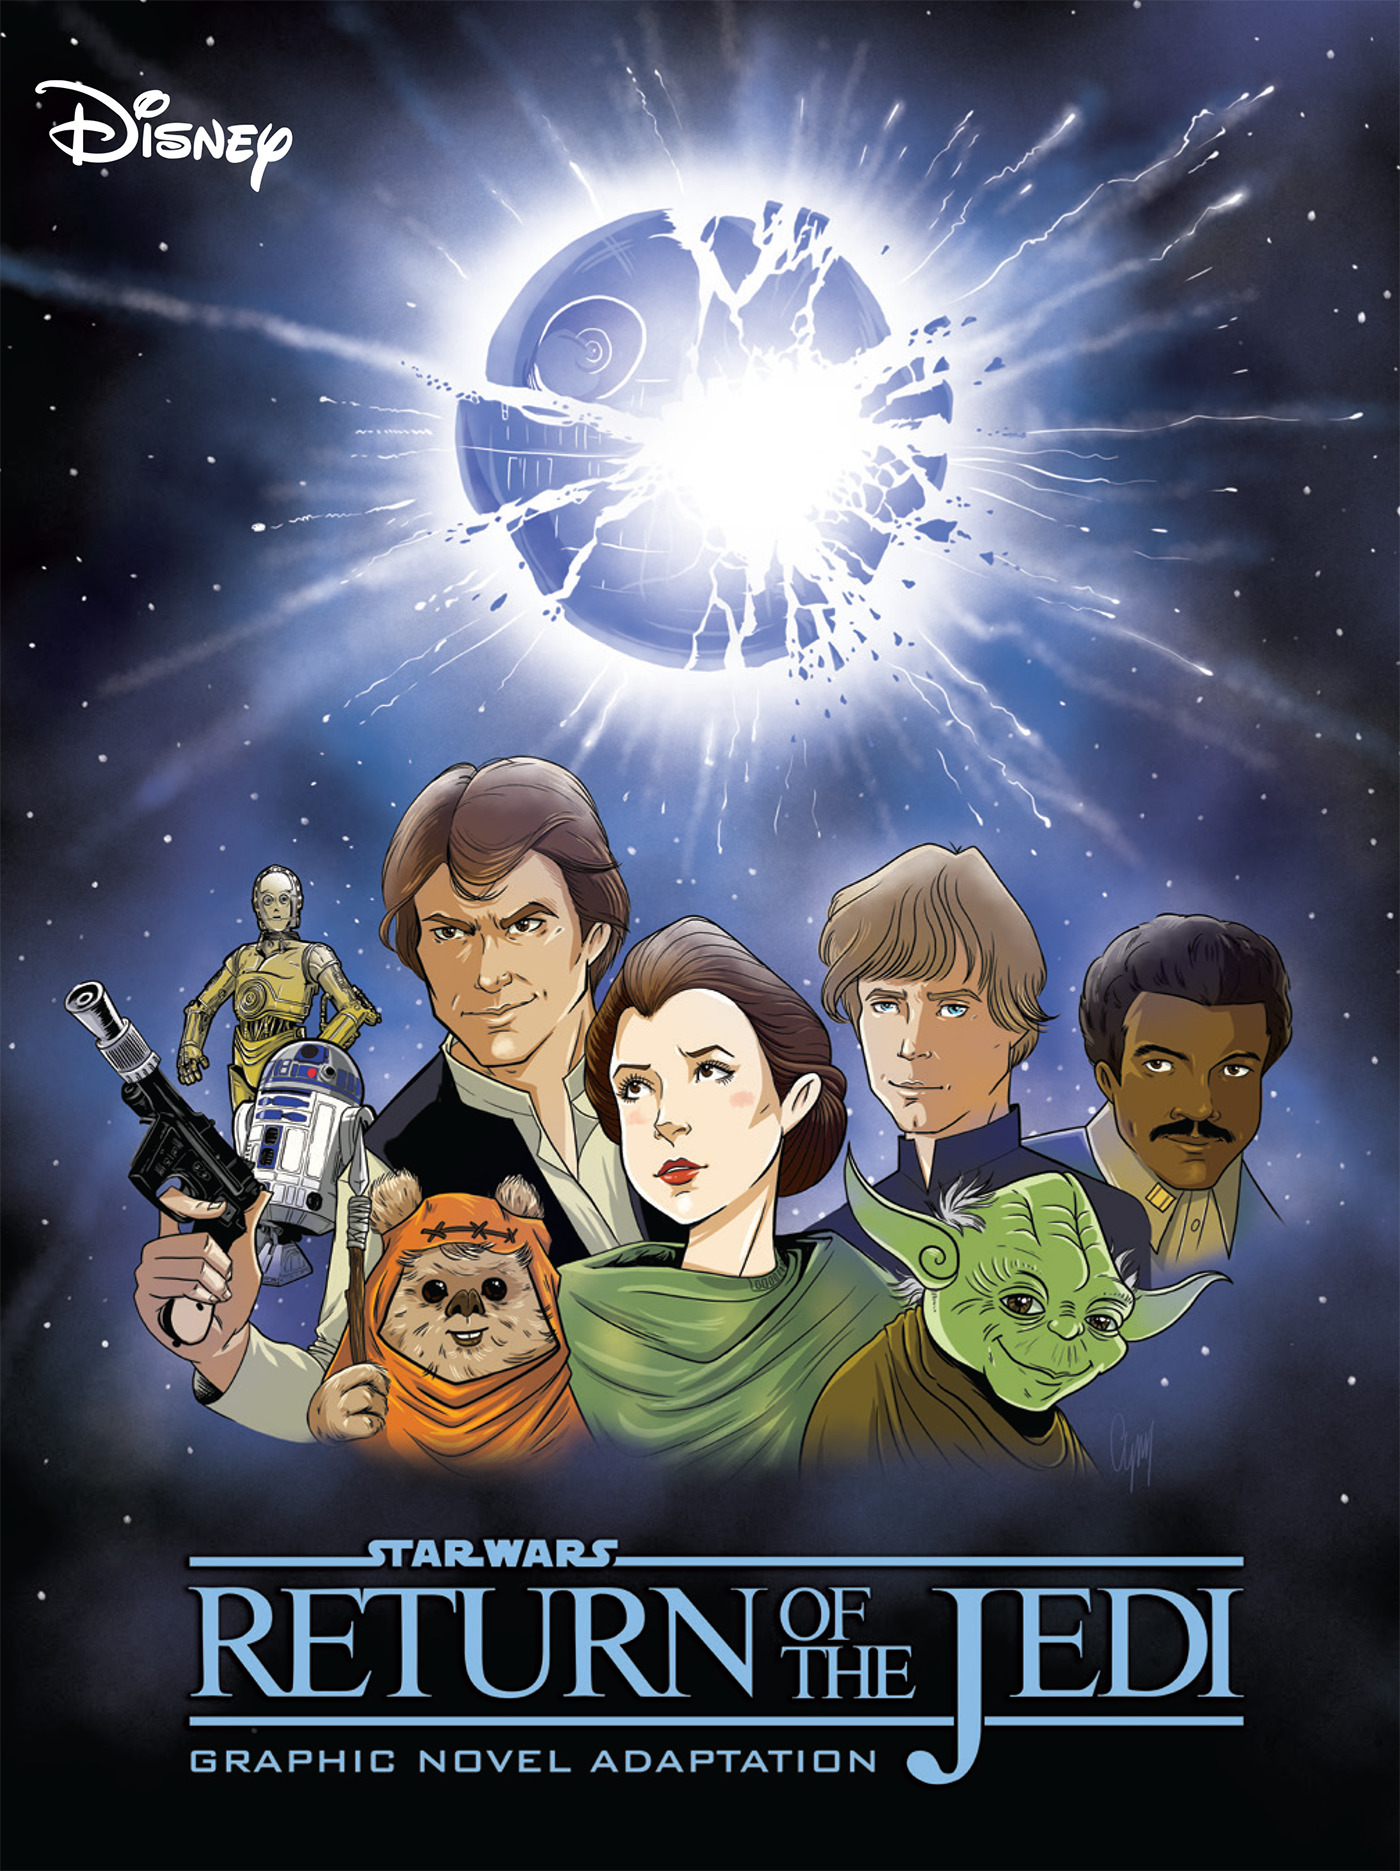 Star Wars: Return of the Jedi - Graphic Novel Adaptation (22.10.2019)